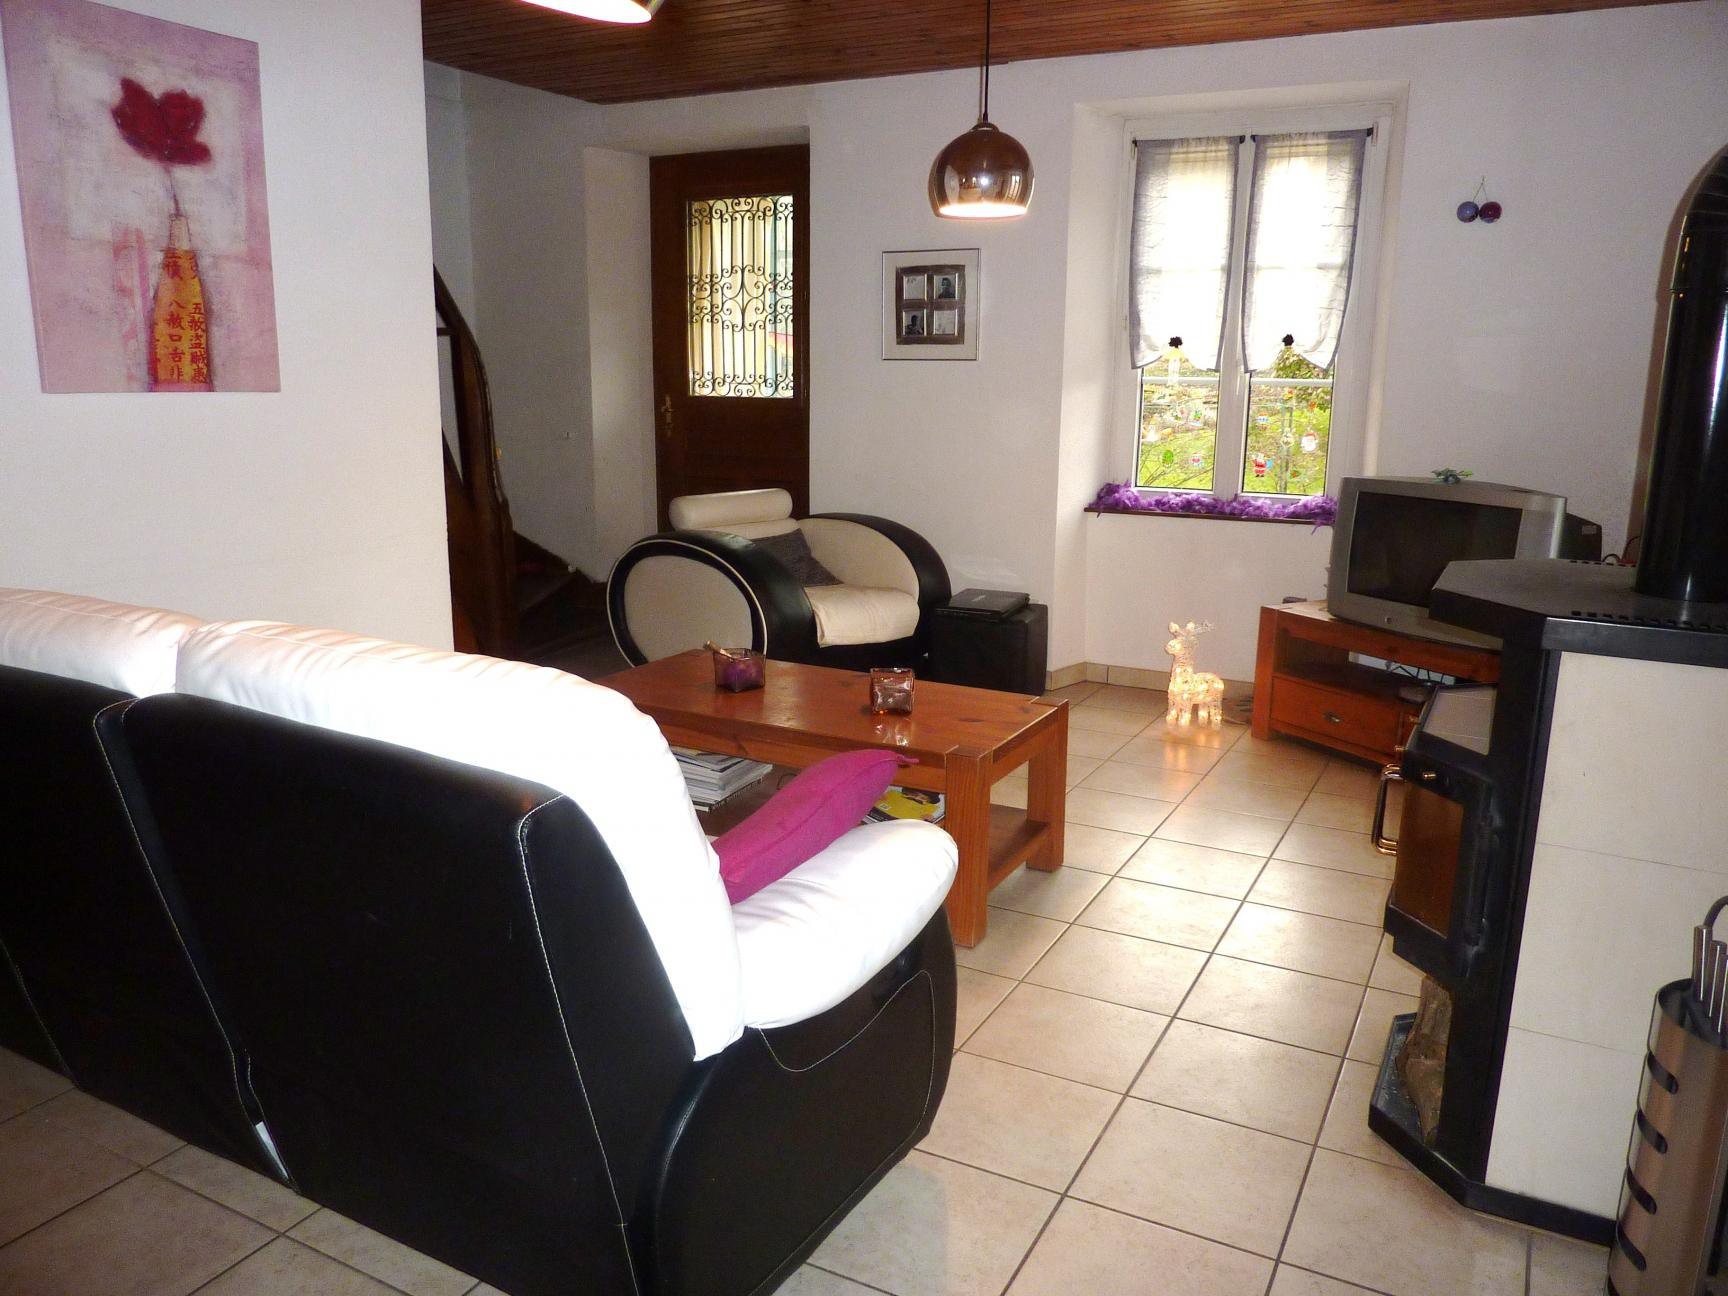 Rental House - Dasle